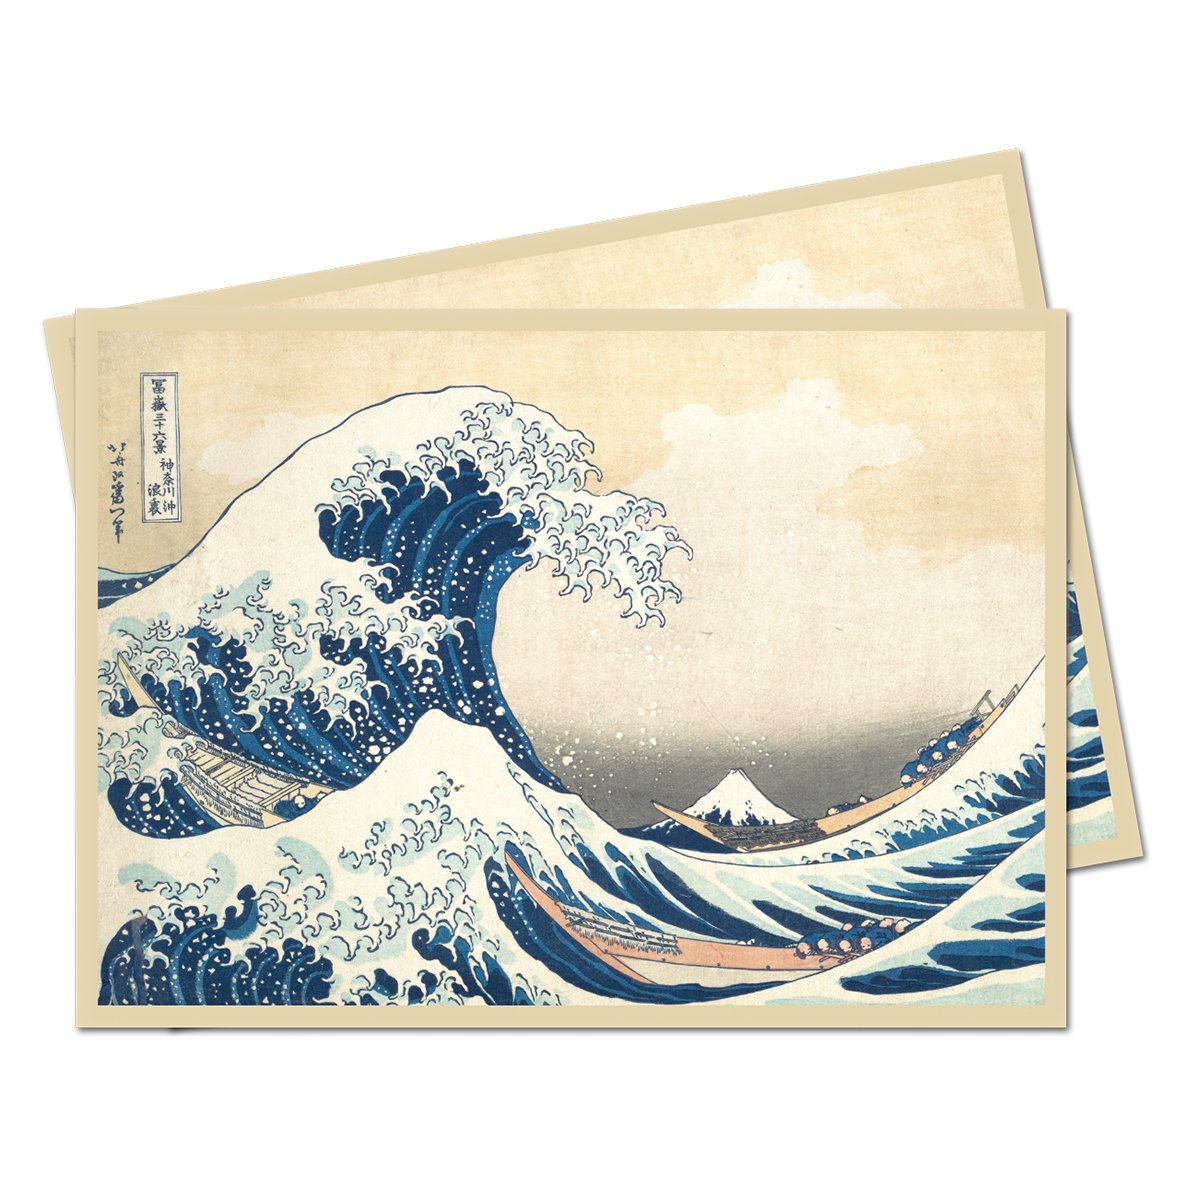 Fine Art Series 'The Great Wave off Kanagawa' Standard (Magic) Deck Protector sleeves (65 count pack)